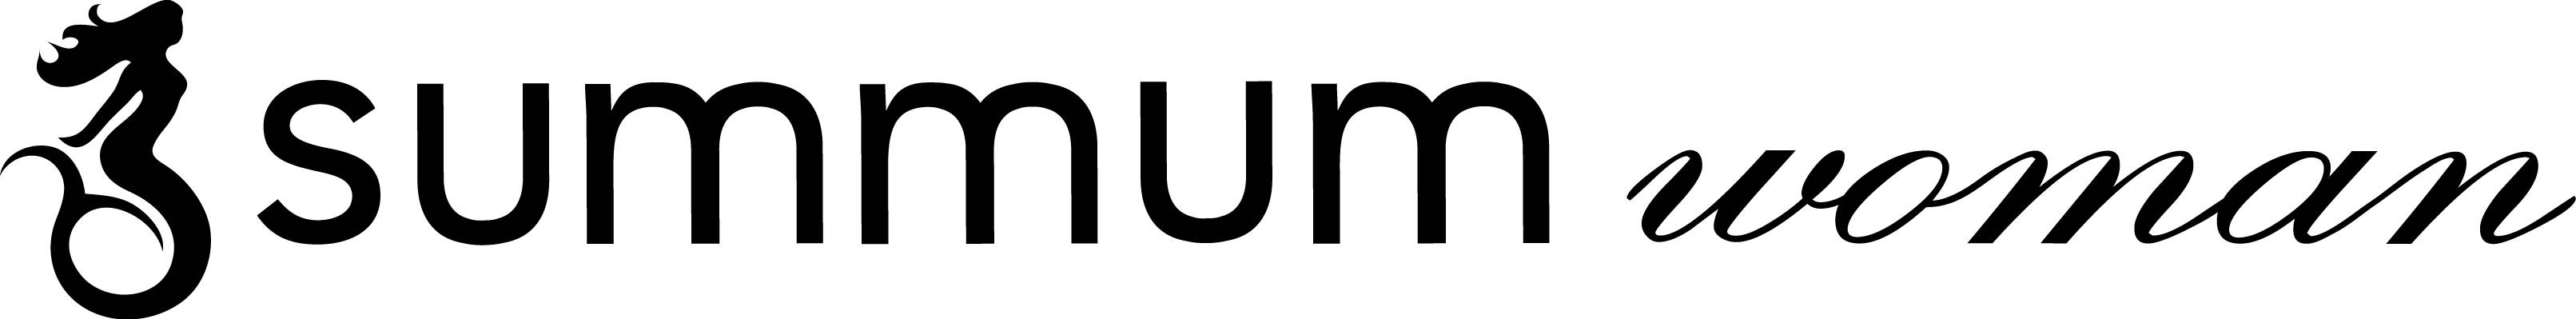 101308-SUM-logo and wordmark (2)